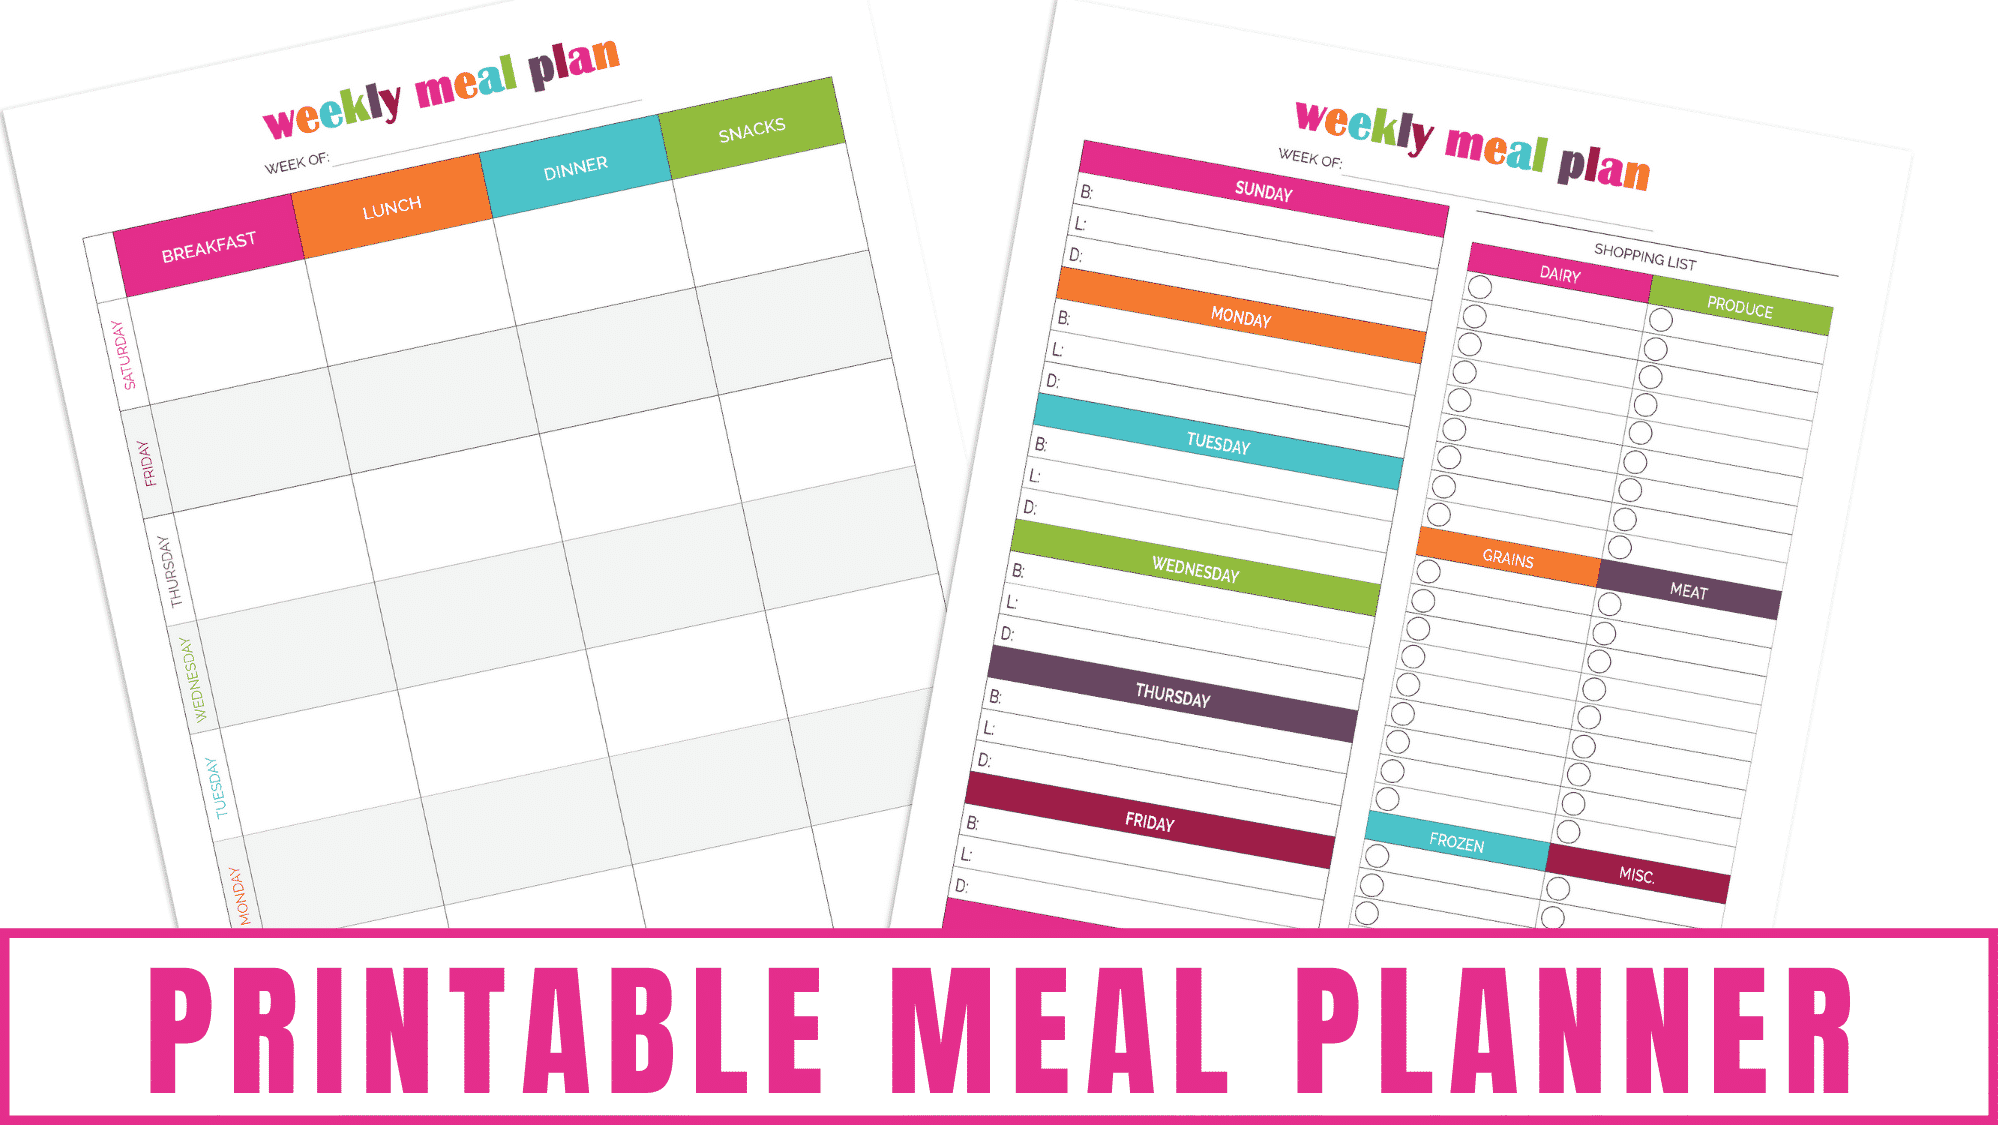 Are you trying to meal plan now that the kids are back in school? These printable meal planners allow you to record your breakfast, lunch, dinner and snacks plus jot down a grocery list. These printables will make meal planning a breeze.